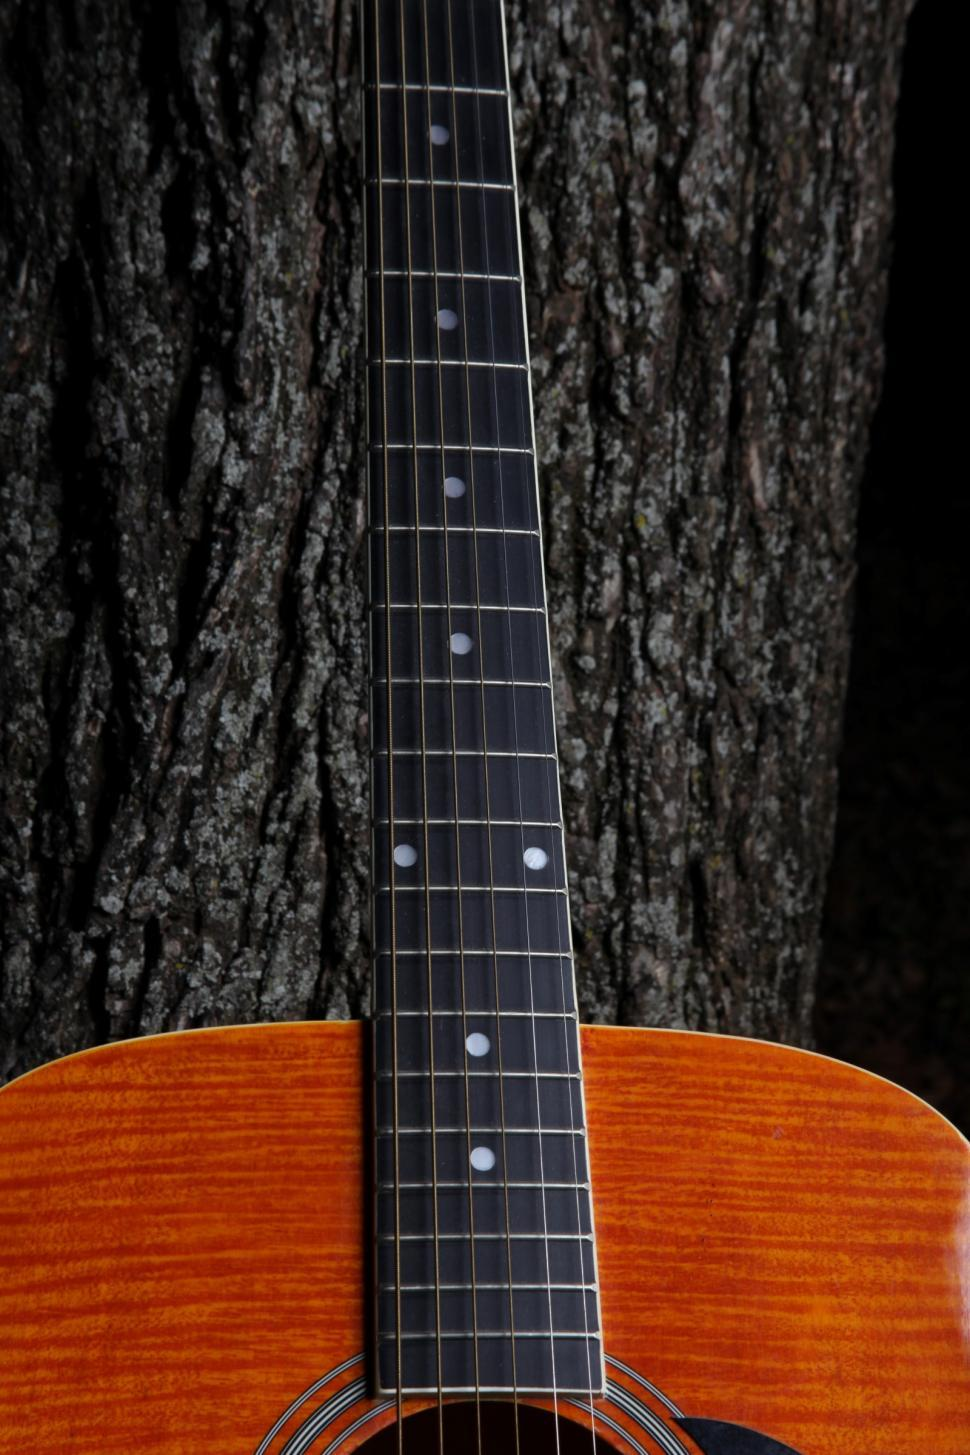 Download Free Stock HD Photo of Guitar neck against a tree. Online